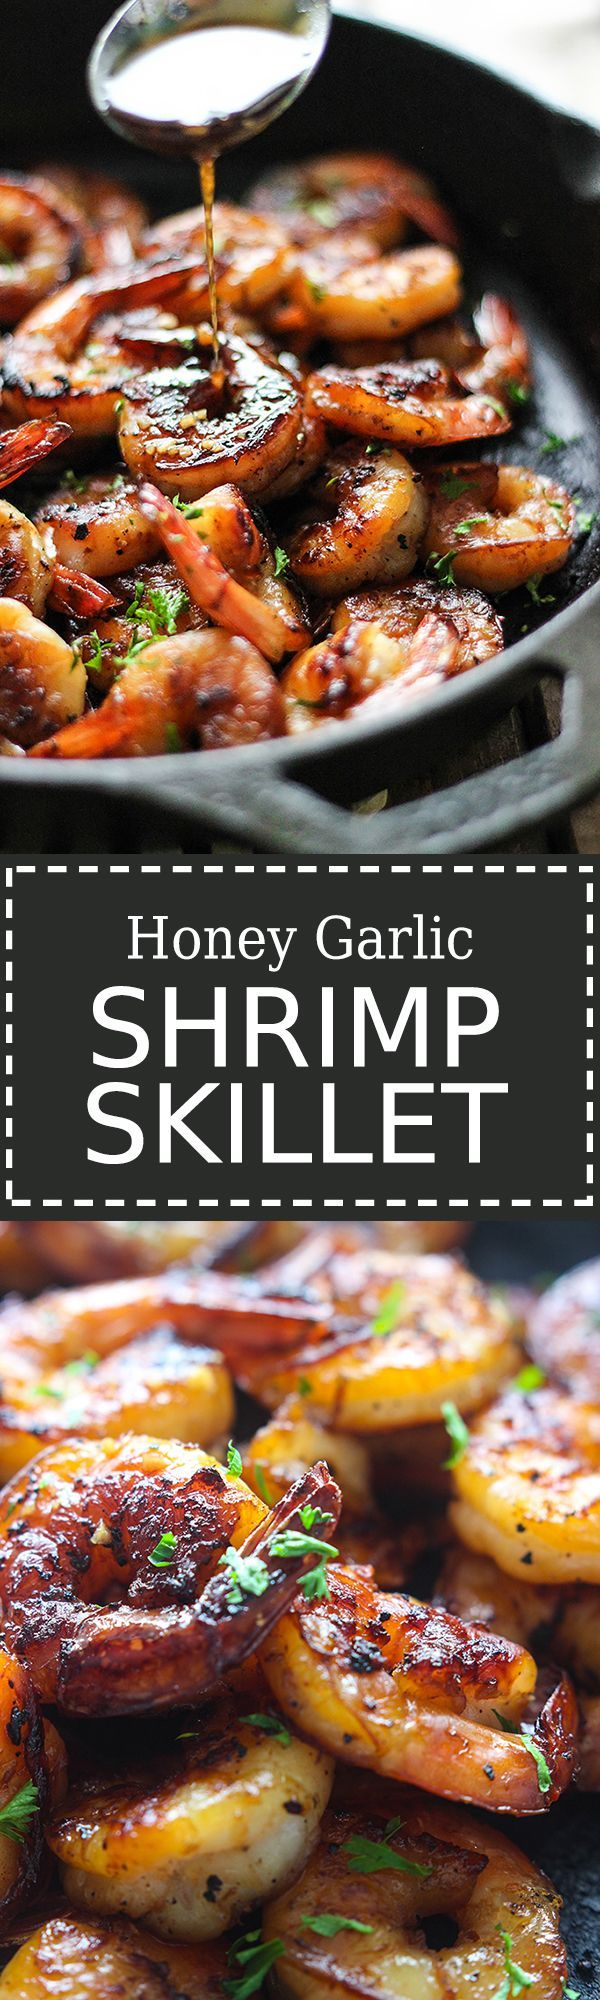 This smoky and sweet honey garlic shrimp skillet is super easy with only five ingredients and cooked in less than 15 minutes!